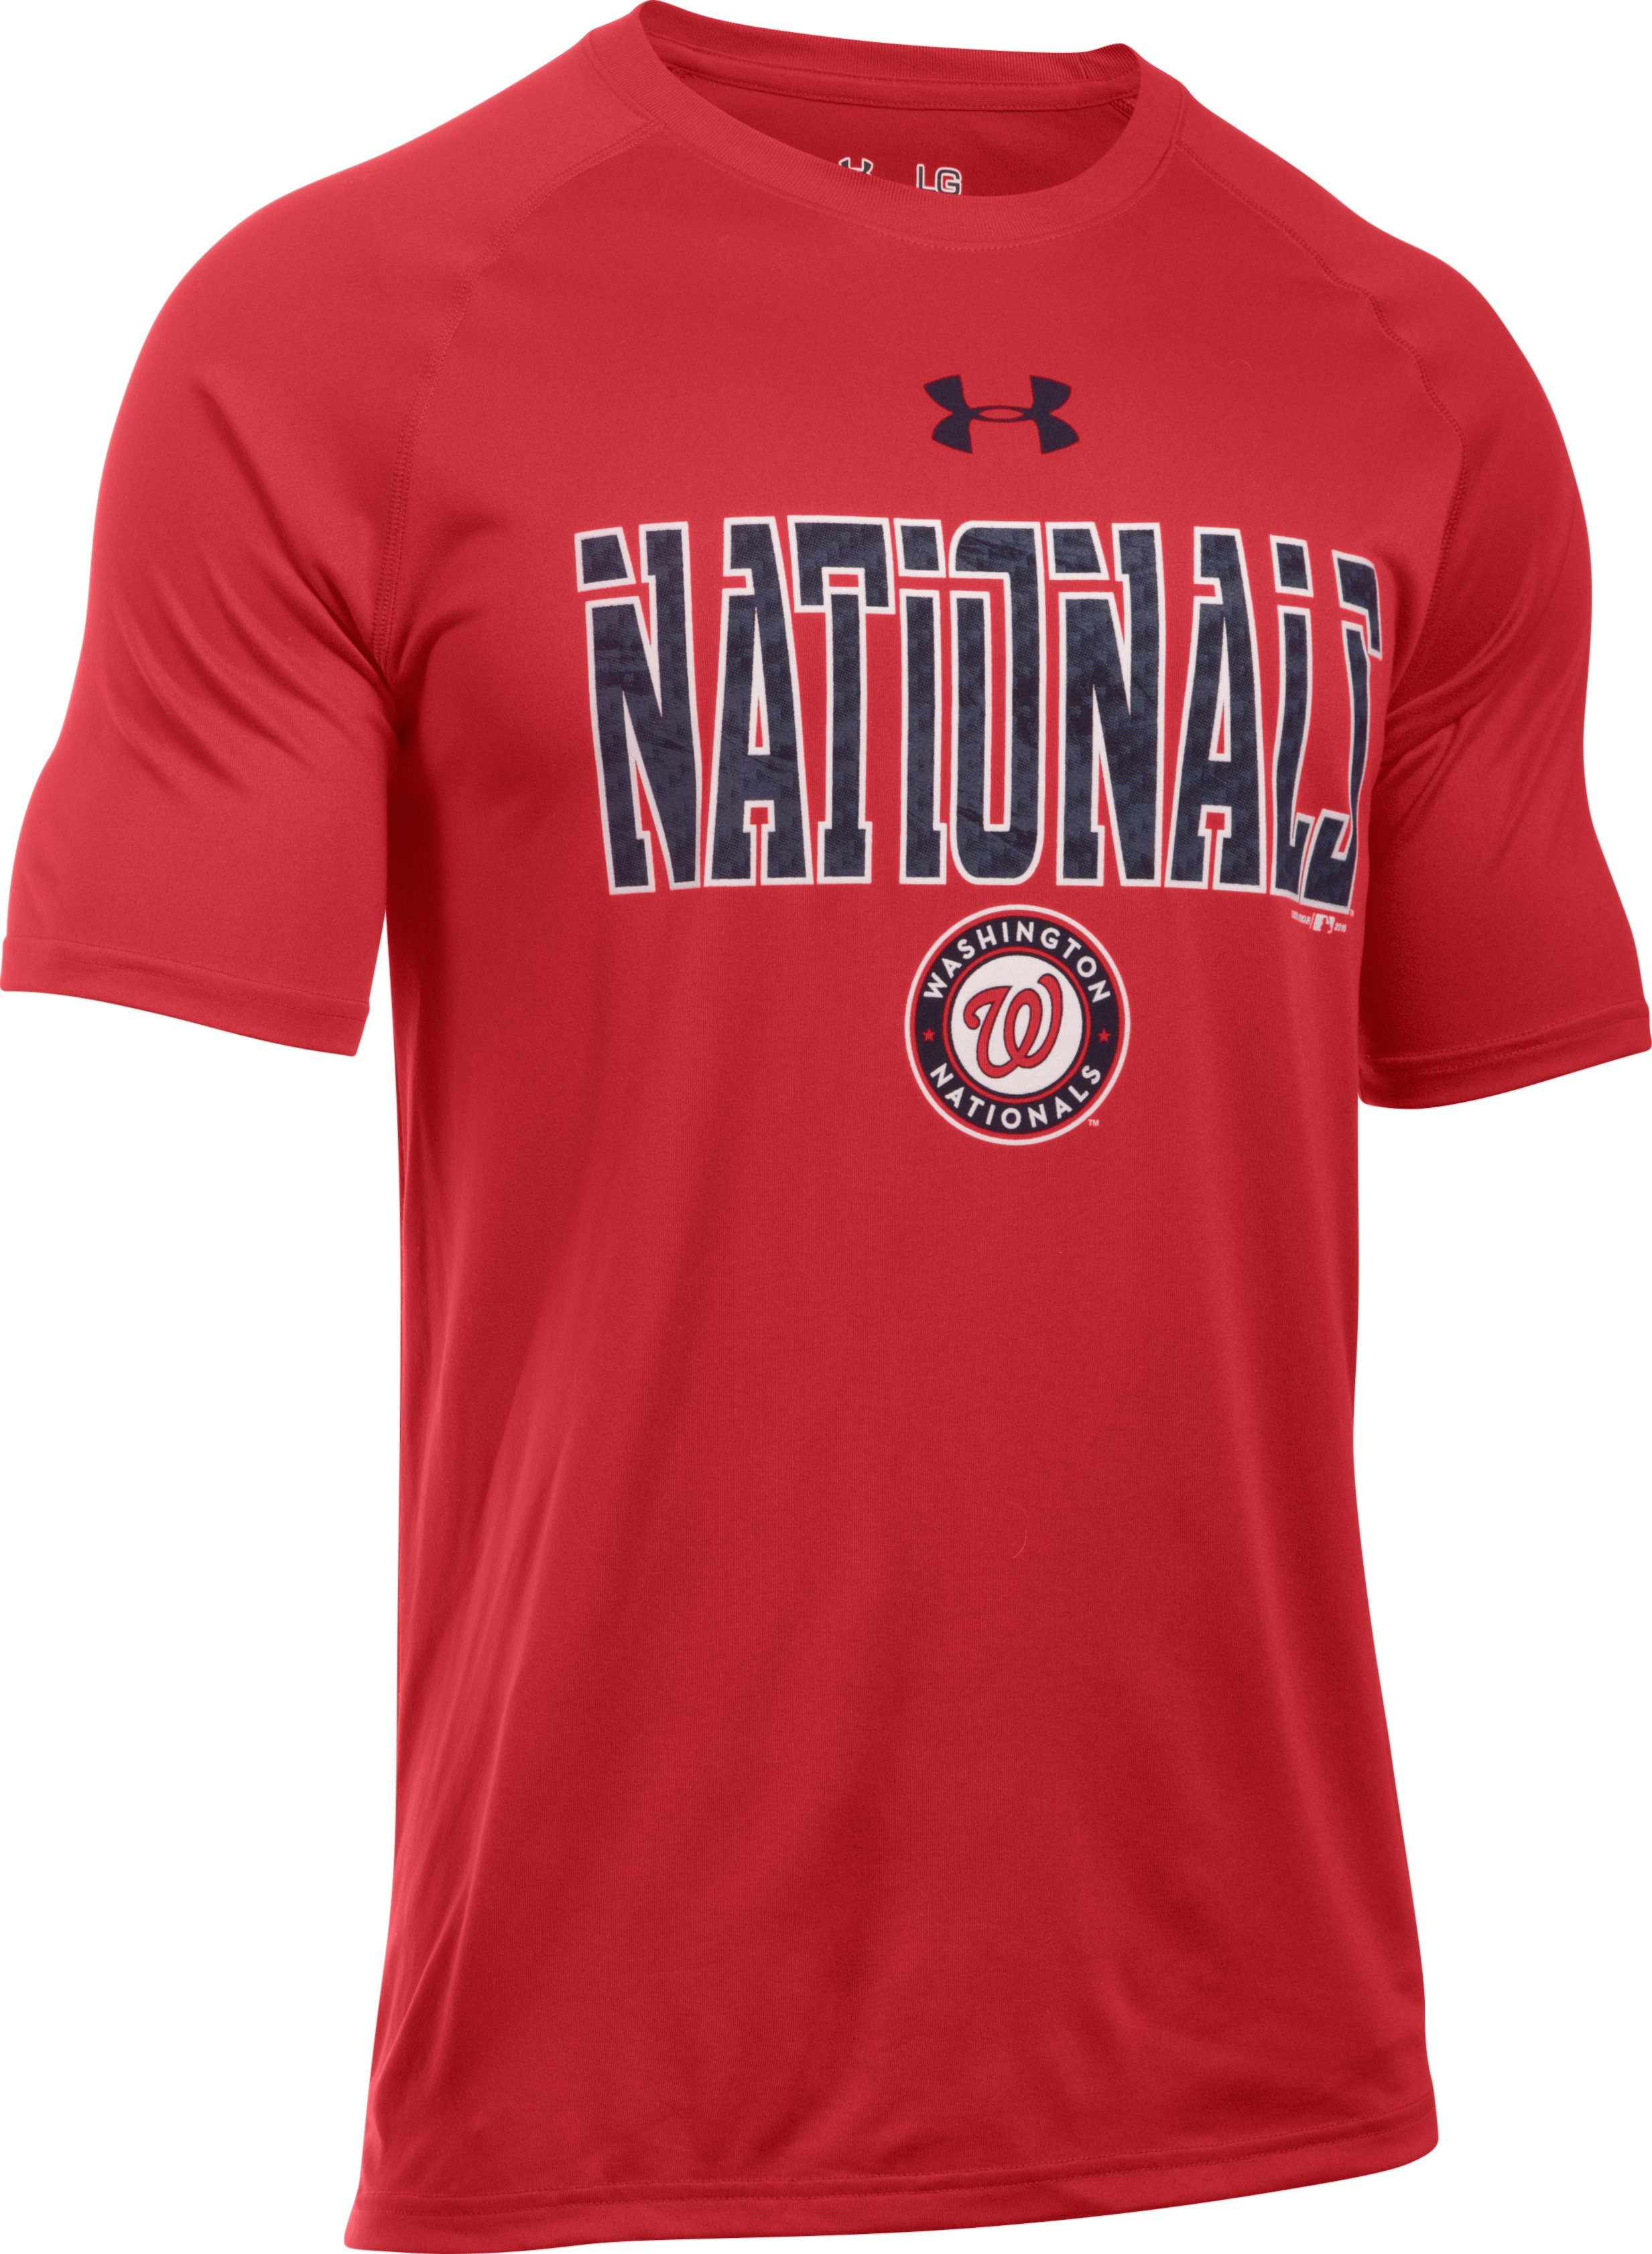 Men's Washington Nationals Team Tech™ T-Shirt, Red,